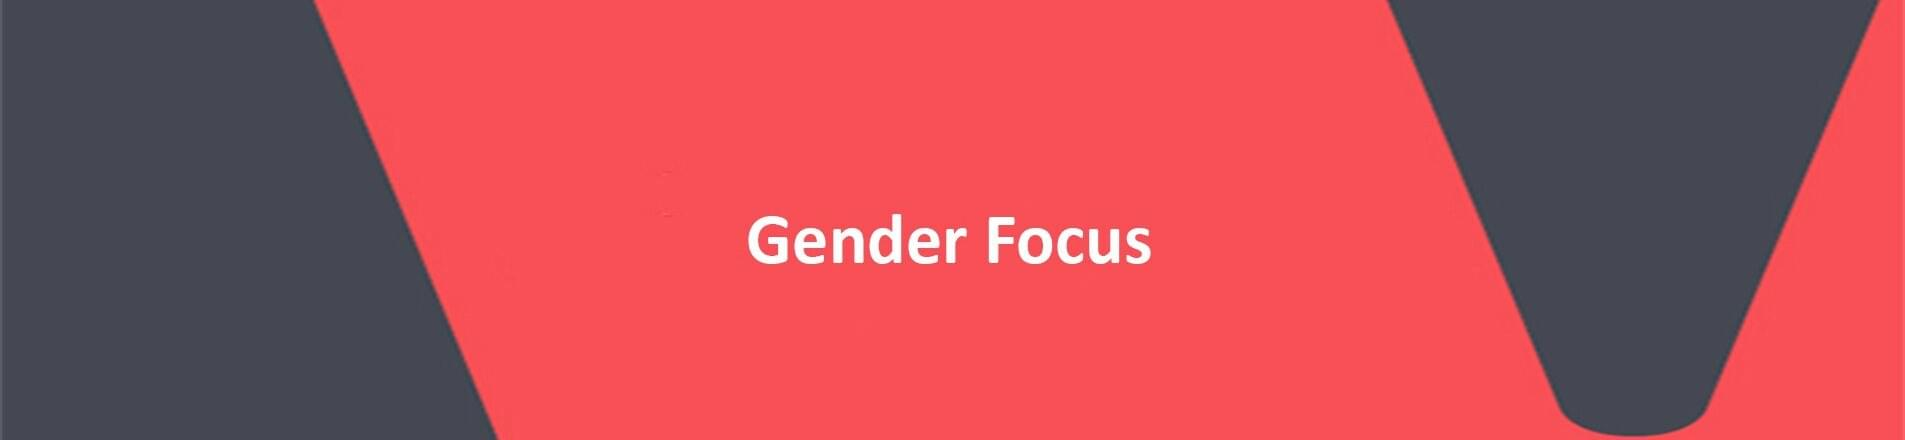 Gender Focus.